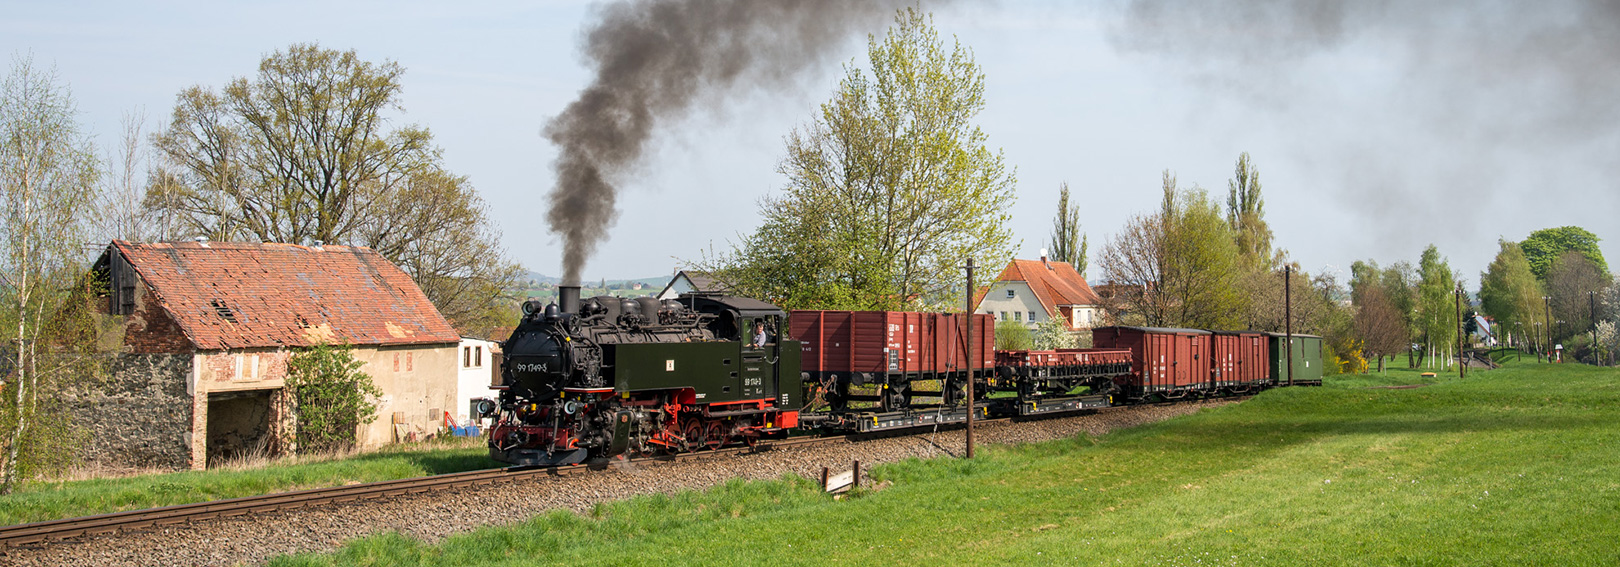 Saxony narrow gauge photo charter Tanago railfan tours